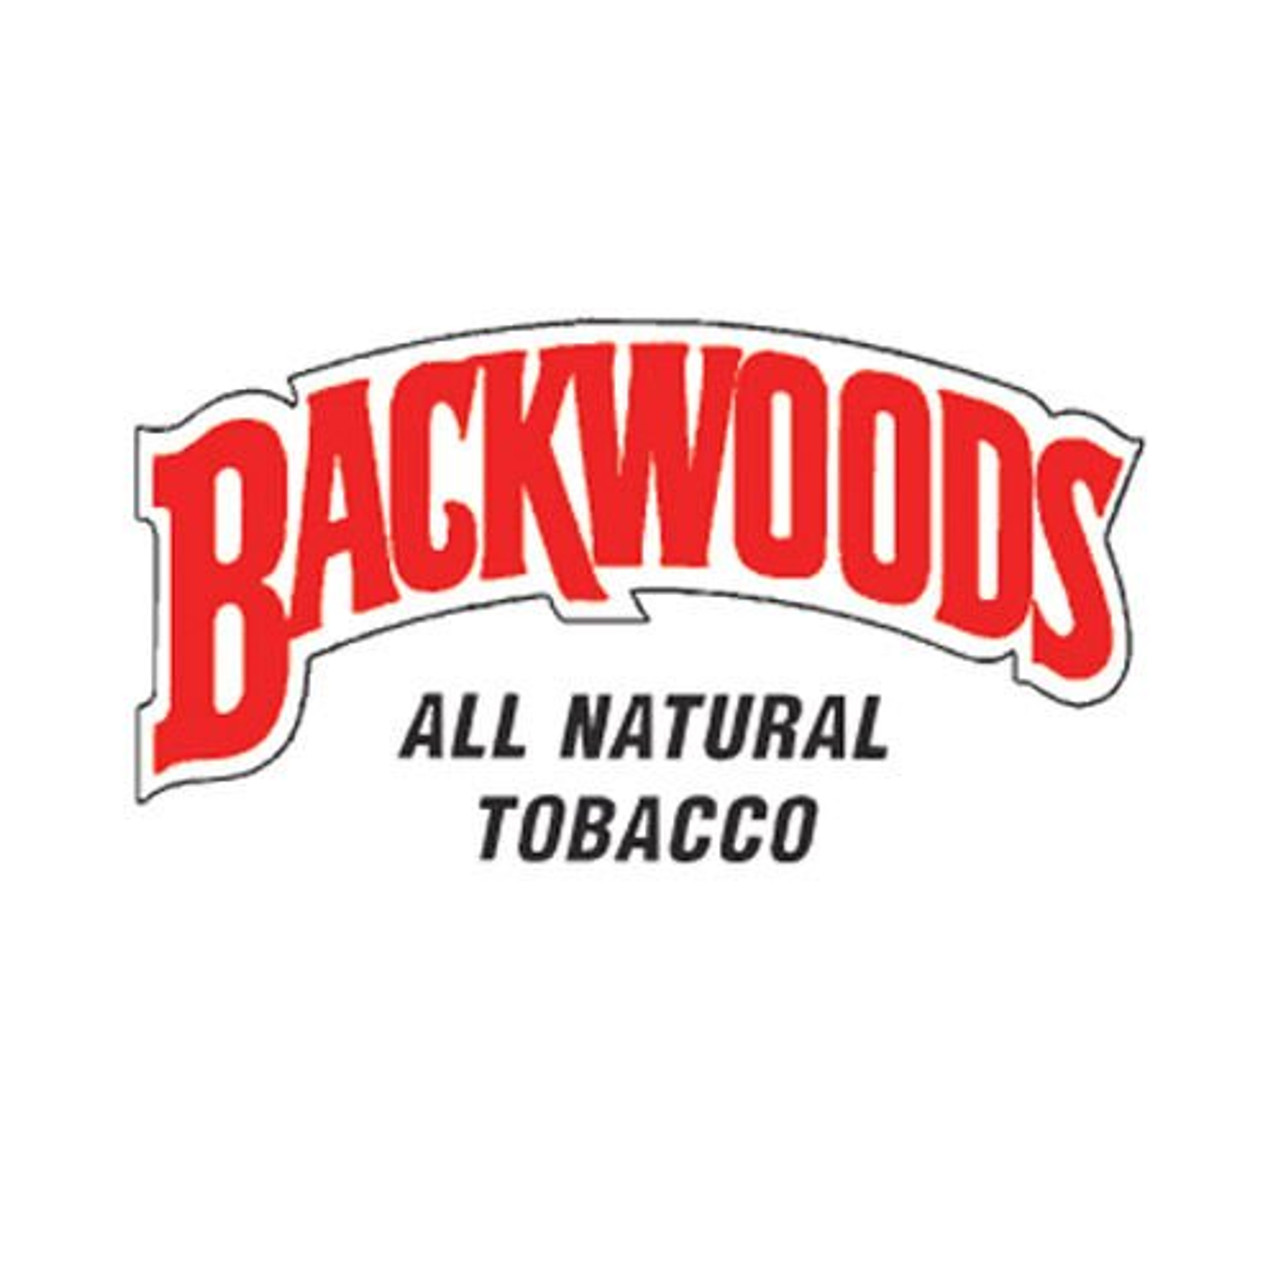 Backwoods Cigars Original Cigars - 4.5 x 32 (Box of 24)